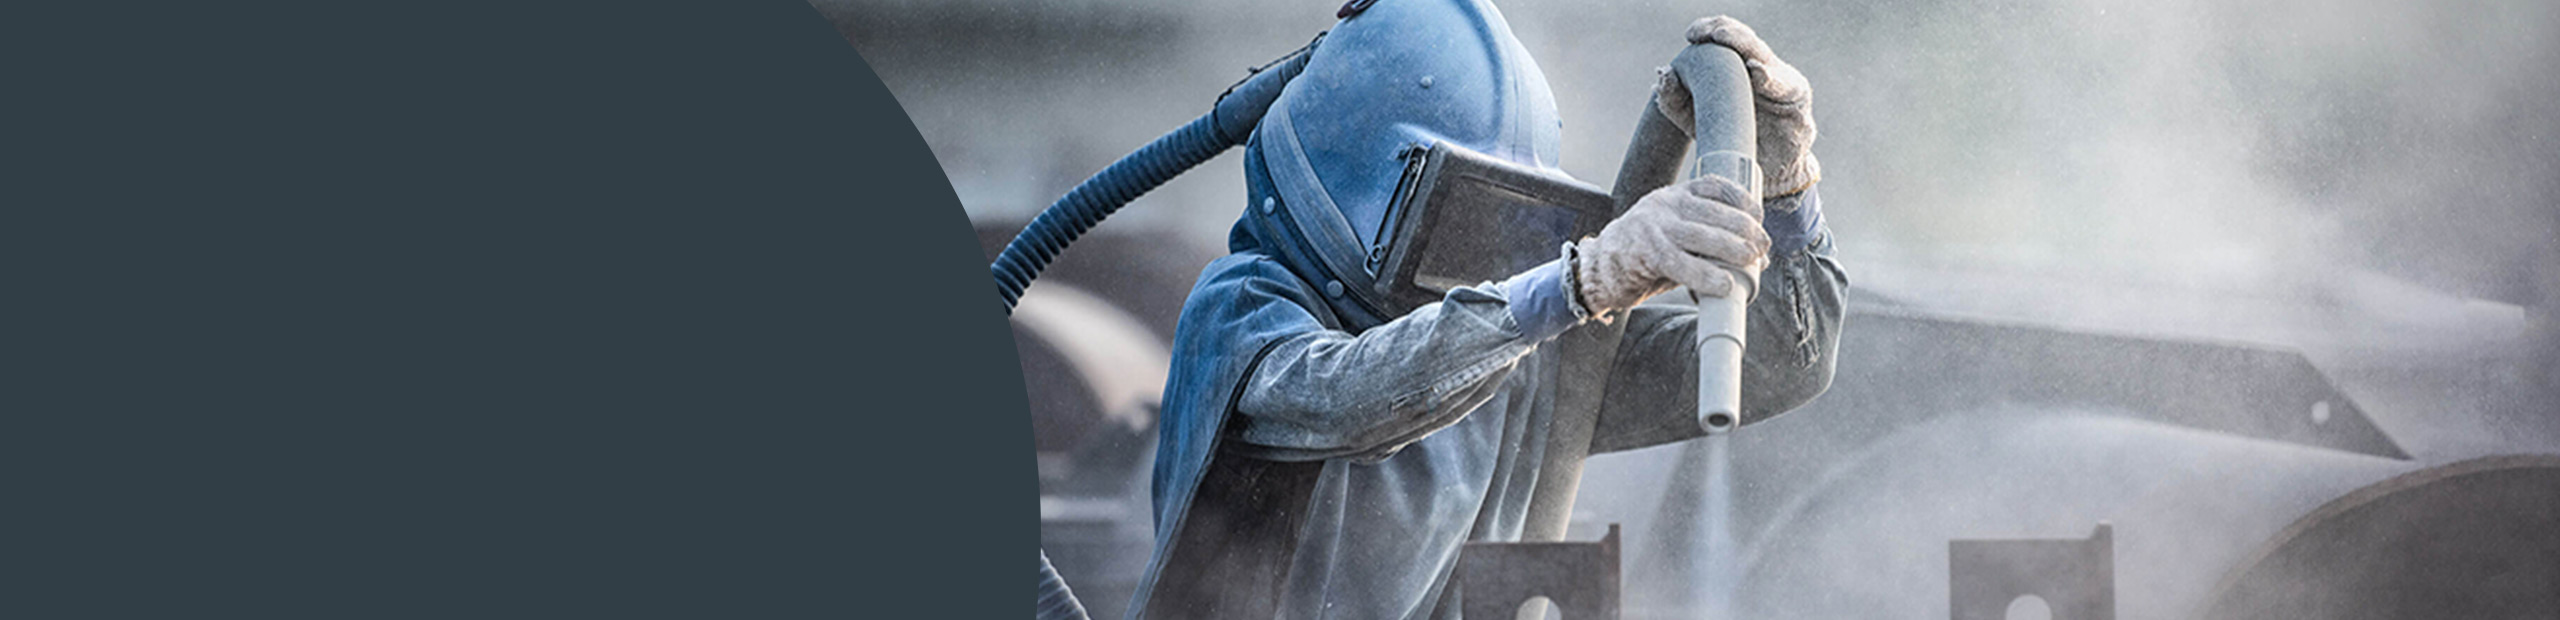 Industrial Cleaning London